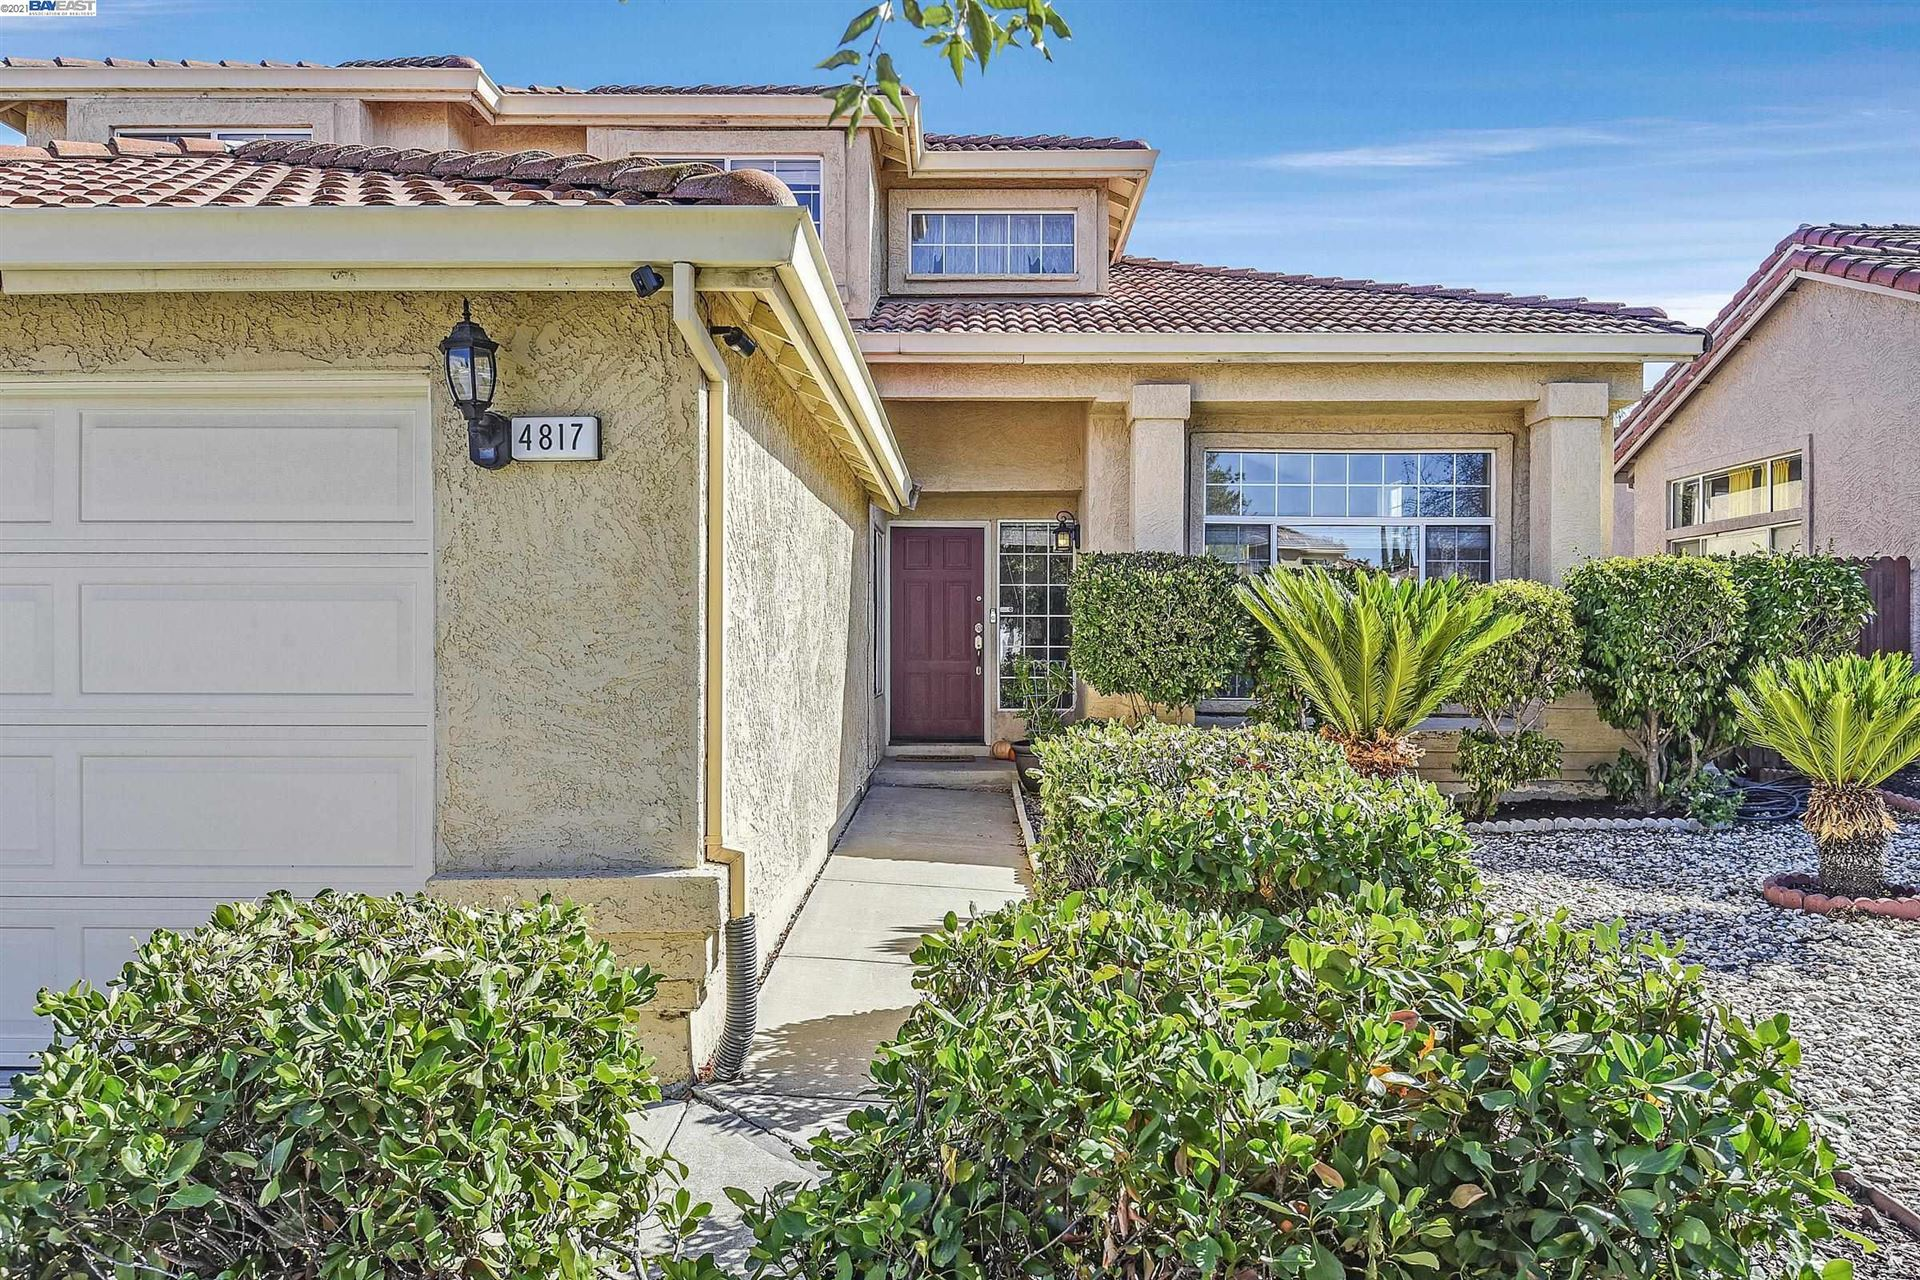 Photo of 4817 Chism Way, Antioch, CA 94531 (MLS # 40971214)